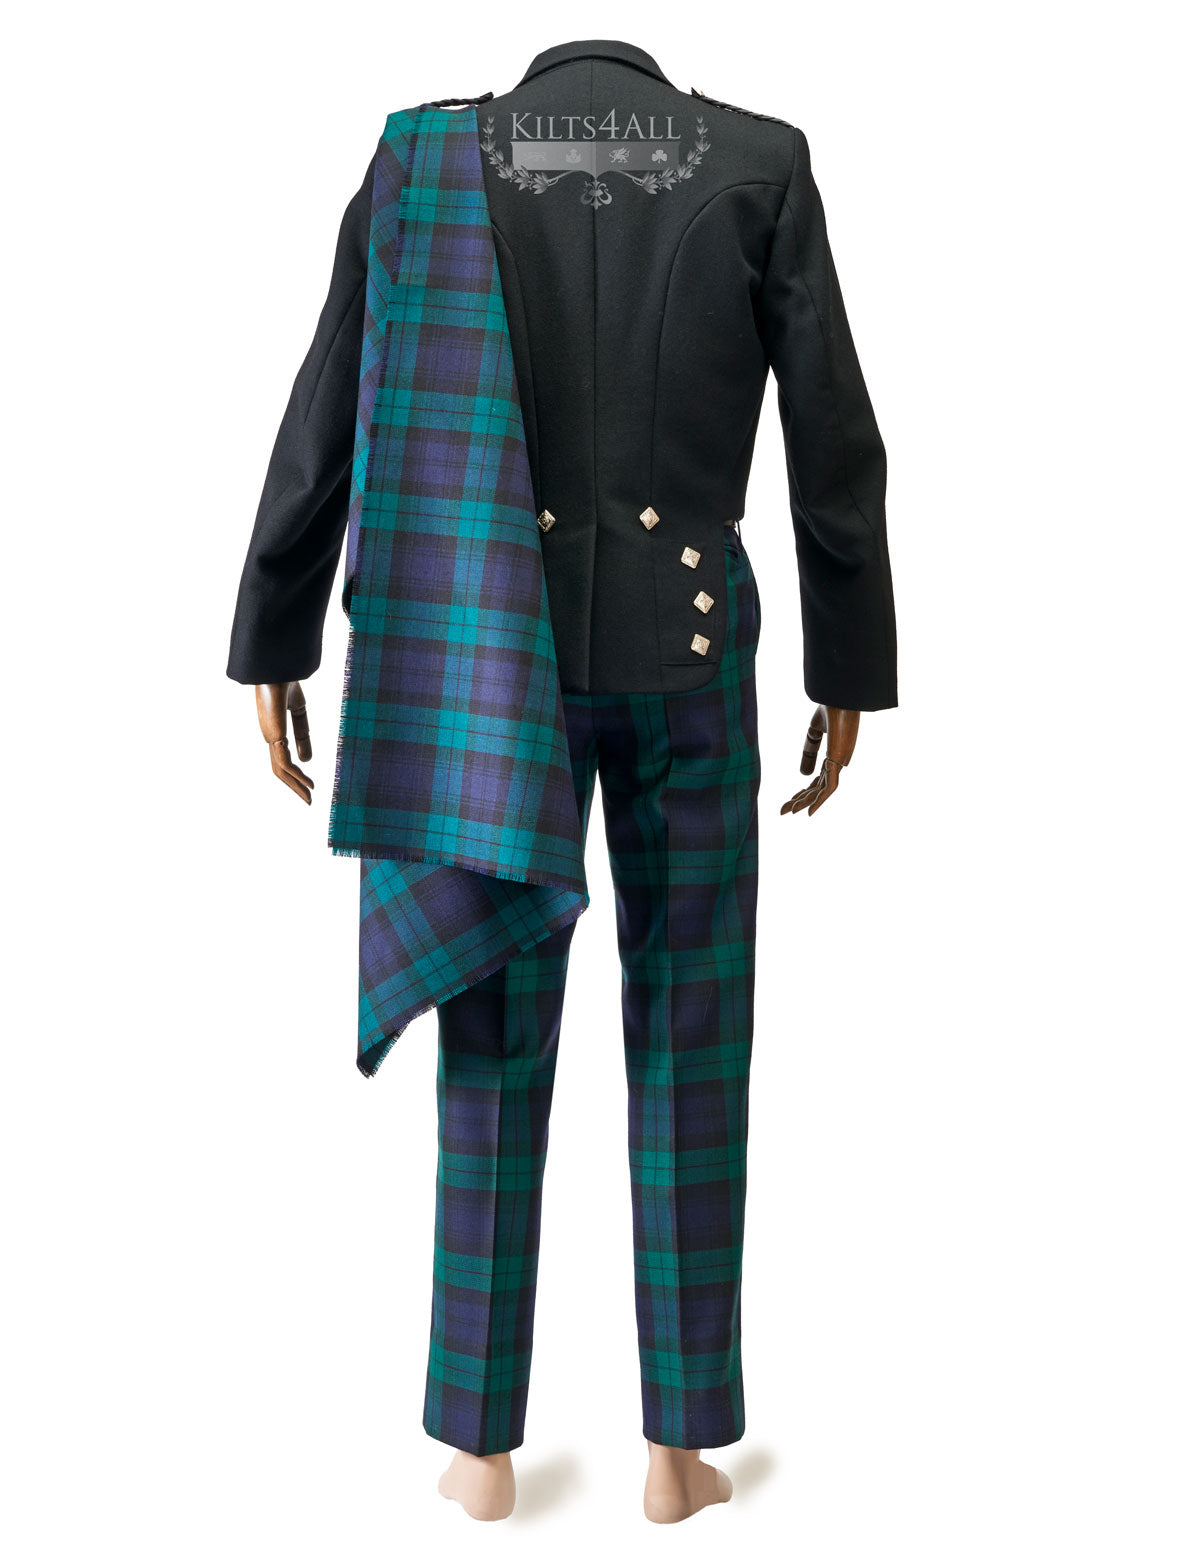 Mens Scottish Tartan Trews Outfit to Hire - Muted Black Argyll Jacket & Wasitcoat